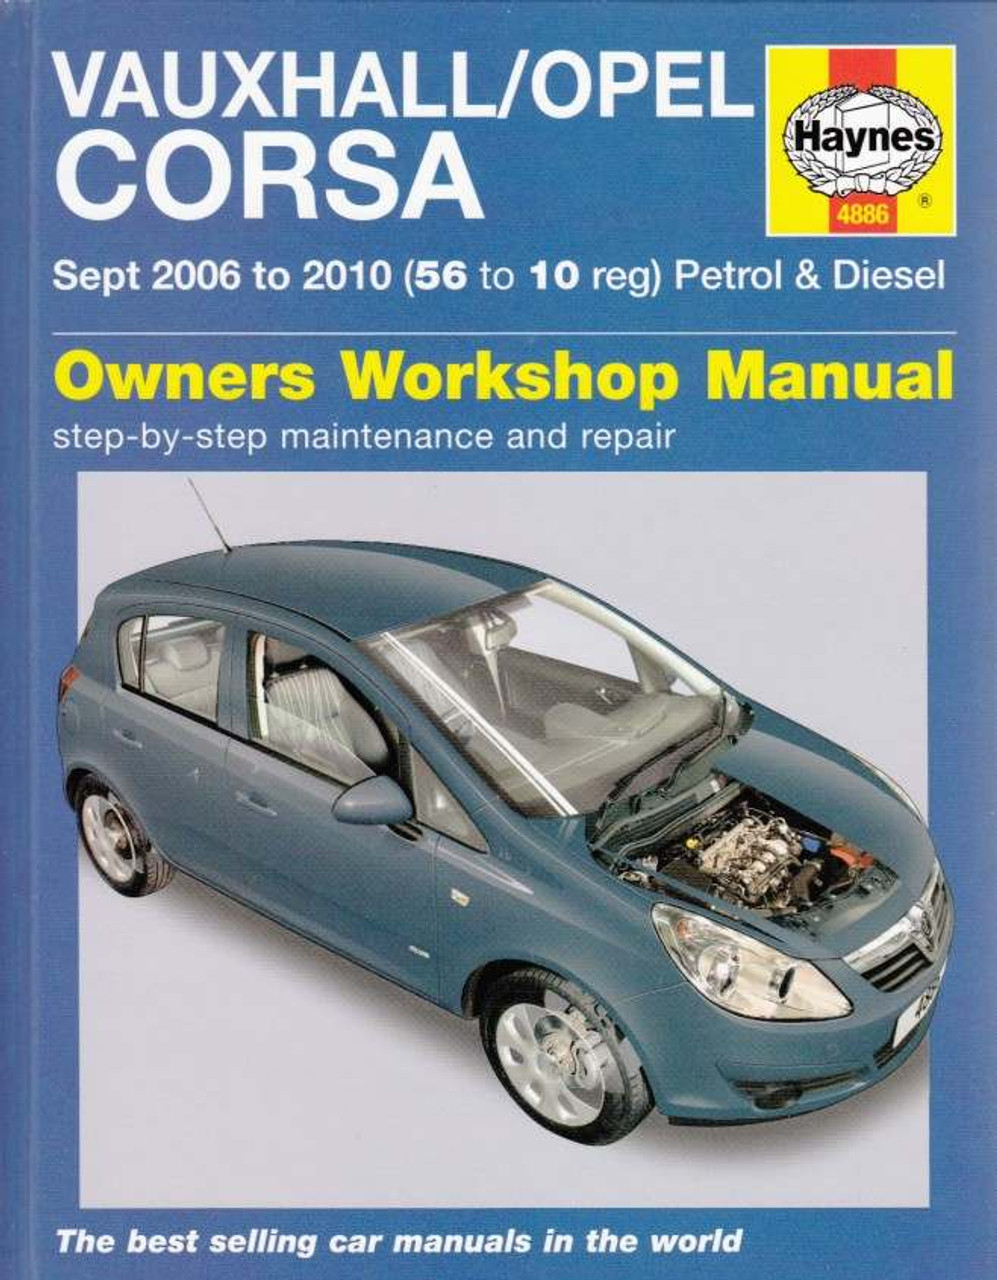 vauxhall corsa 2002 owners manual open source user manual u2022 rh dramatic varieties com Vauxhall Corsa Interior 2008 Vauxhall Corsa